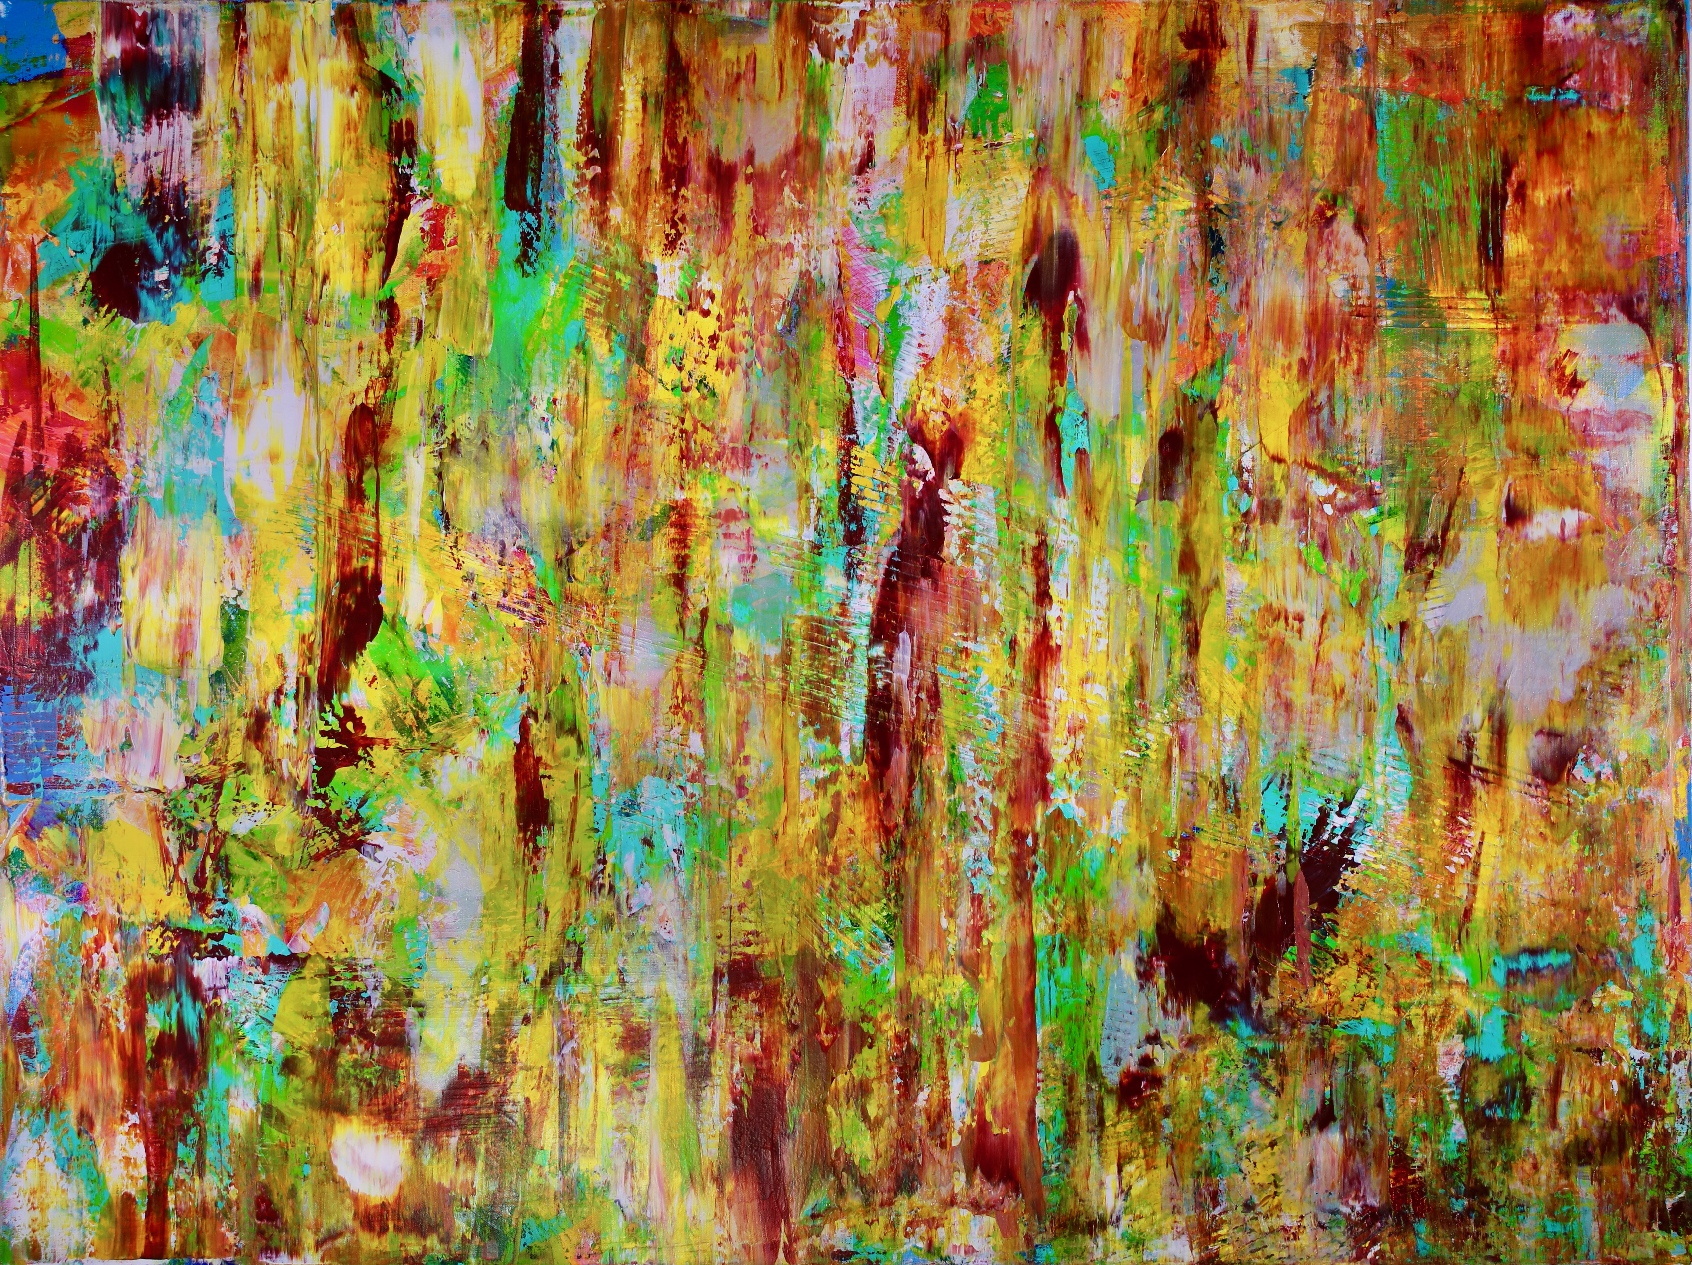 Magic Golden Spectra (2018) Acrylic painting by Nestor ToroMagic Golden Spectra (2018) Acrylic painting by Nestor Toro